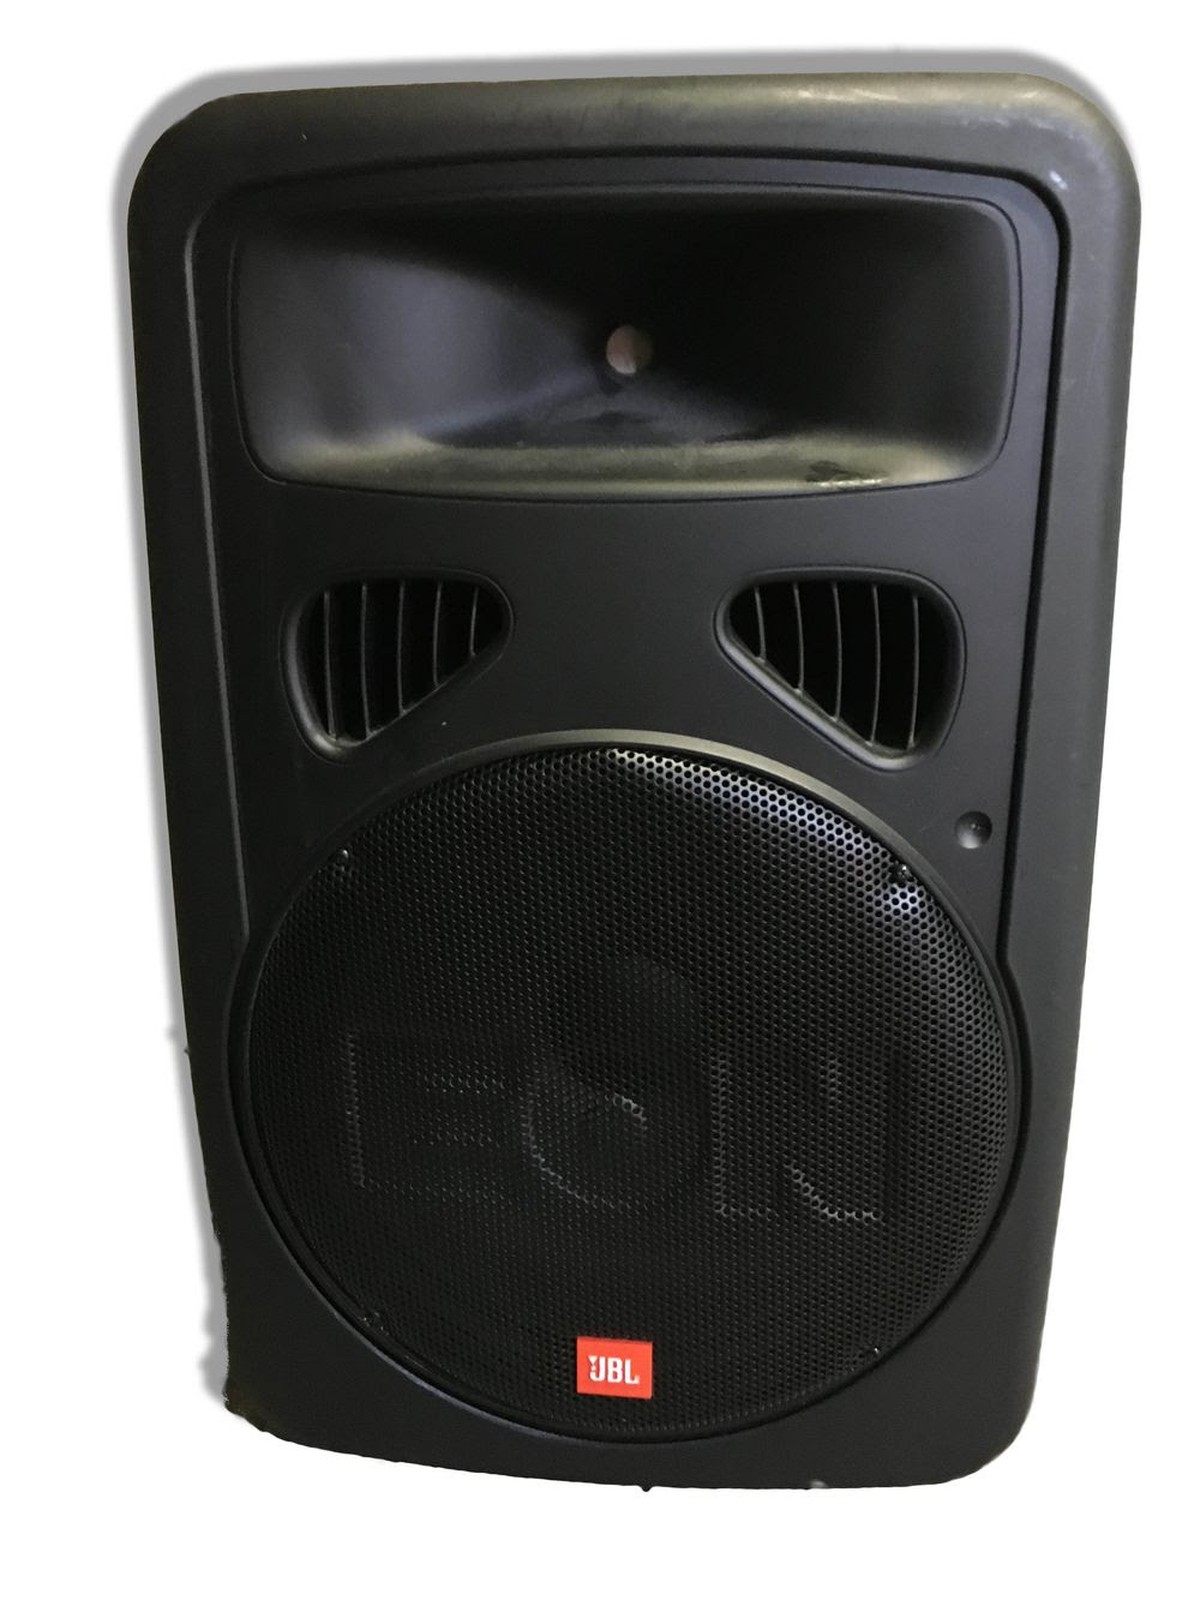 jbl used speakers. jbl eon 15 g2 speakers jbl used b